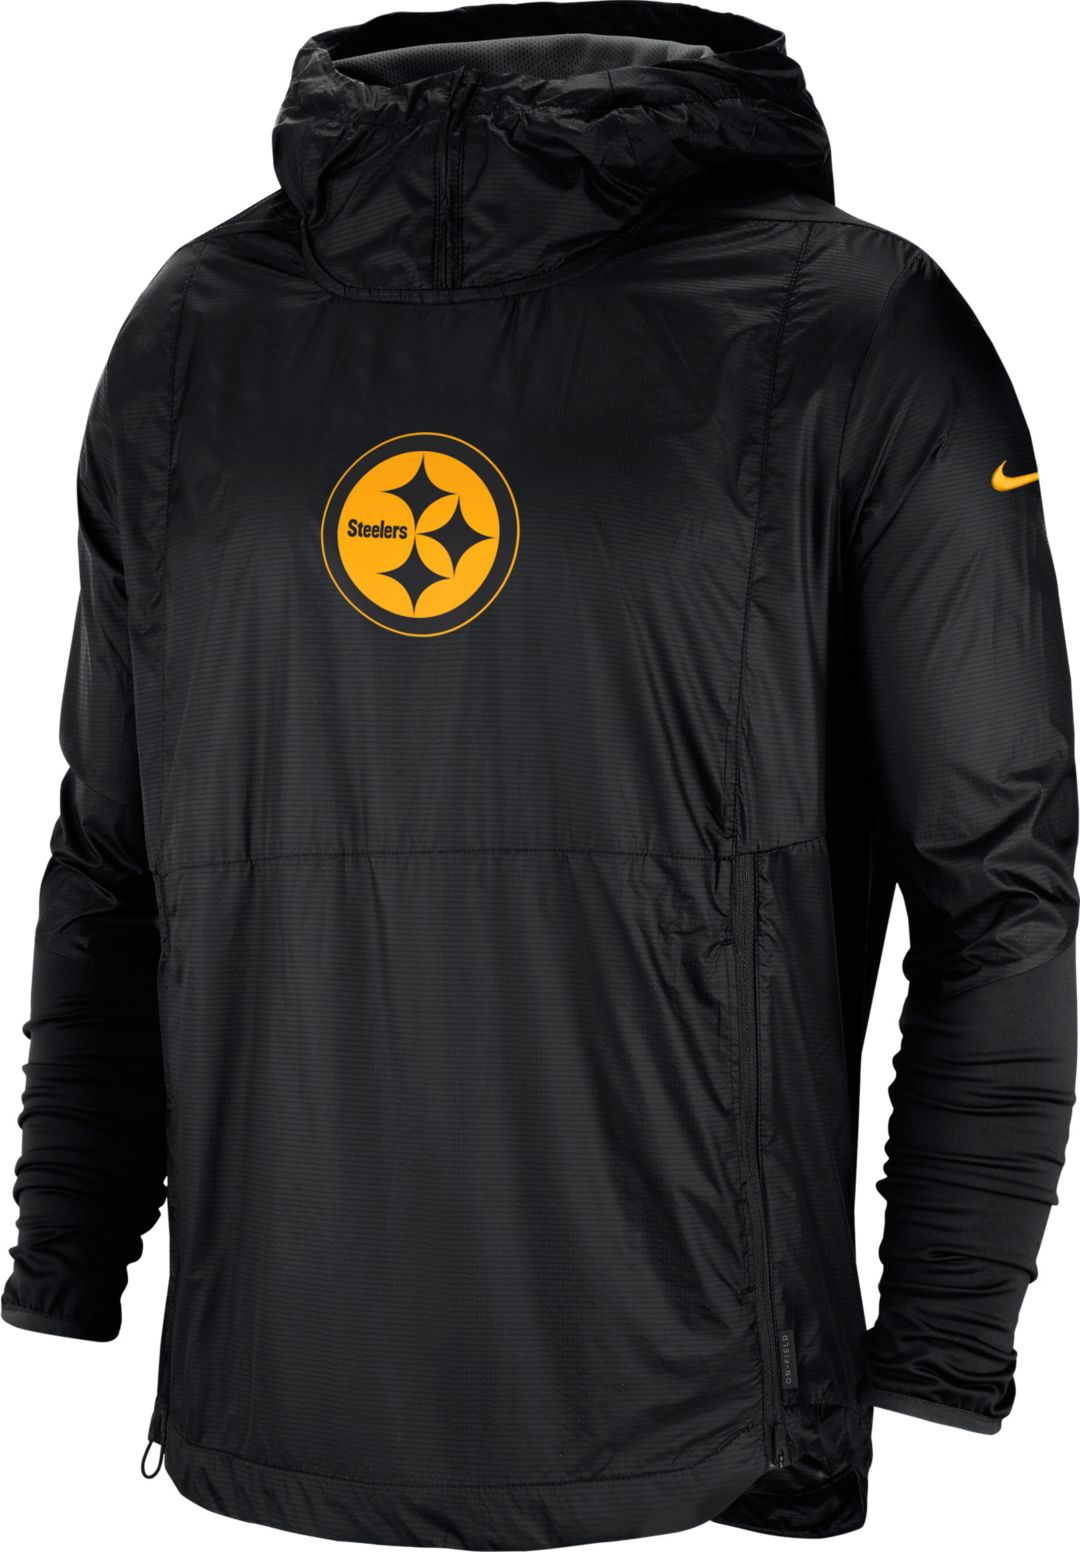 new concept 01416 78245 Nike Men's Pittsburgh Steelers Sideline Repel Player Black Jacket